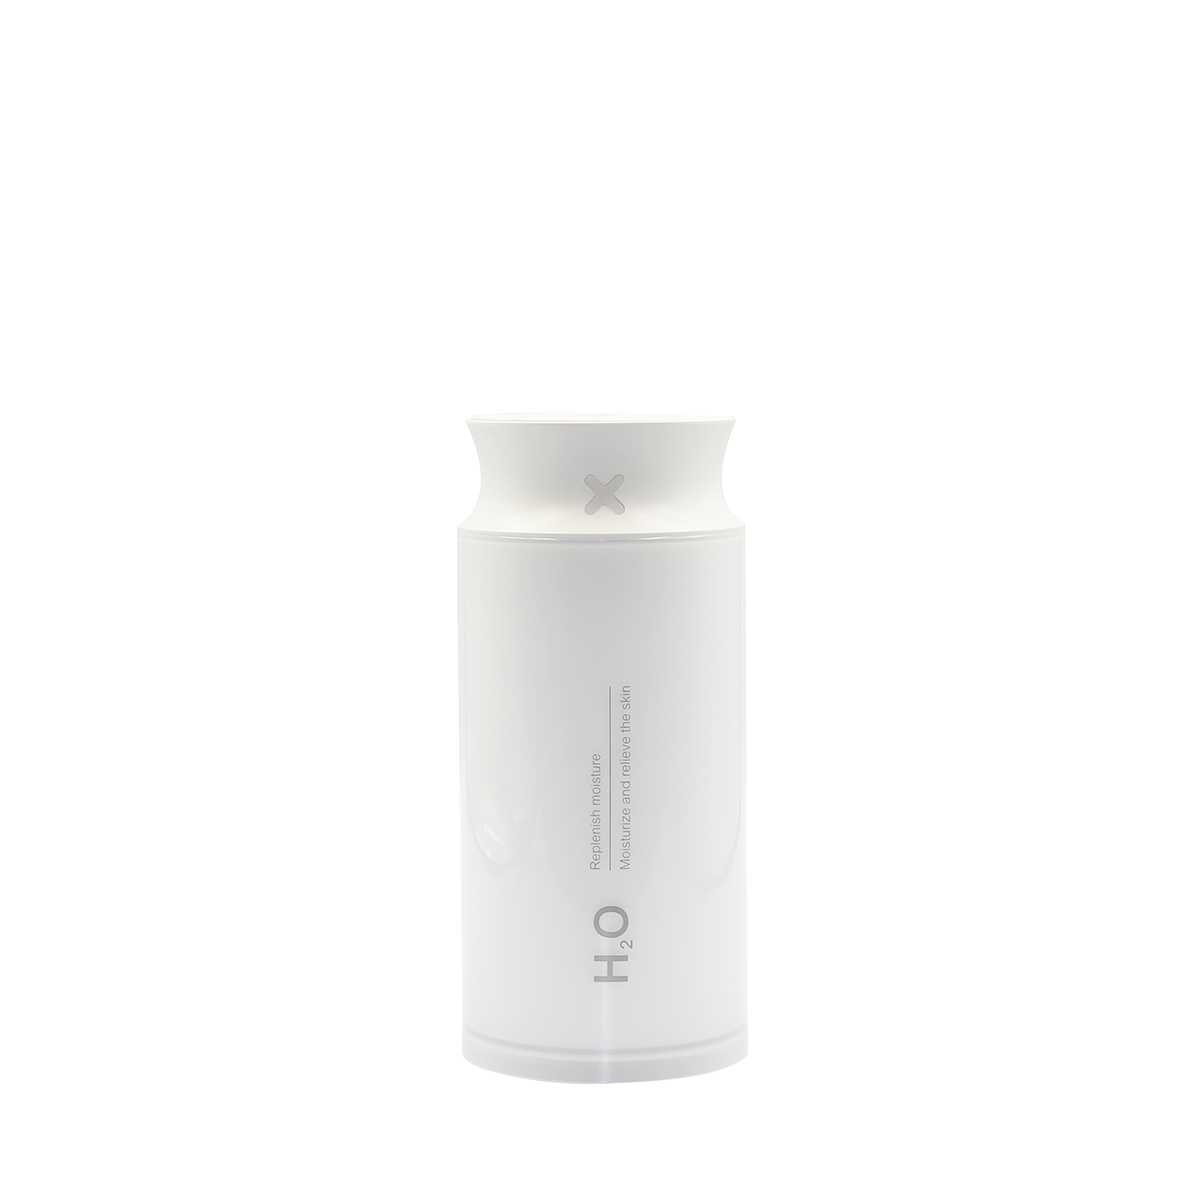 Mini Humidifier H907